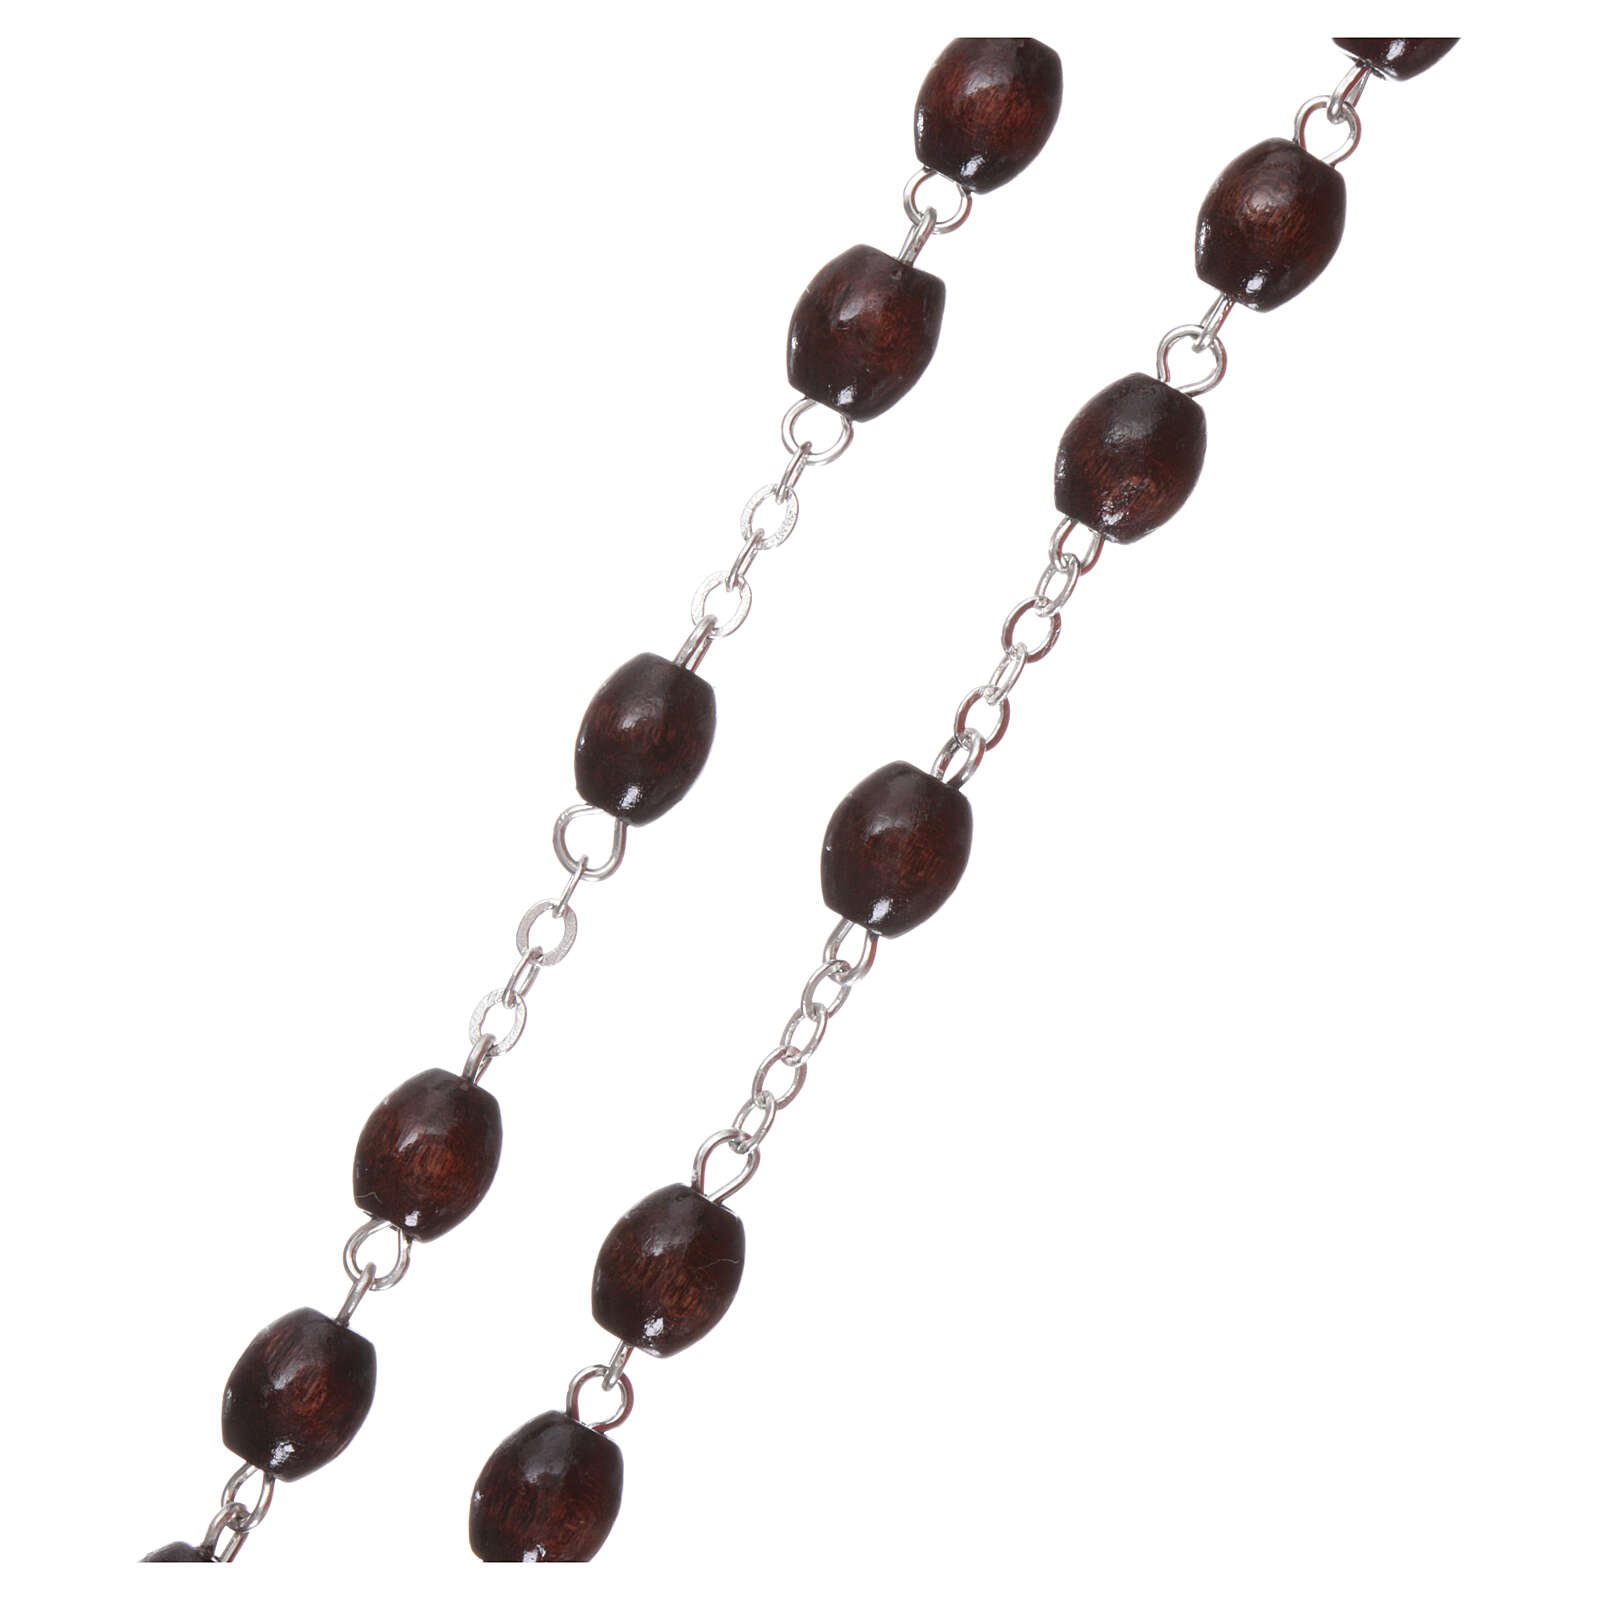 Rosary rosewood 4 mm beads 4